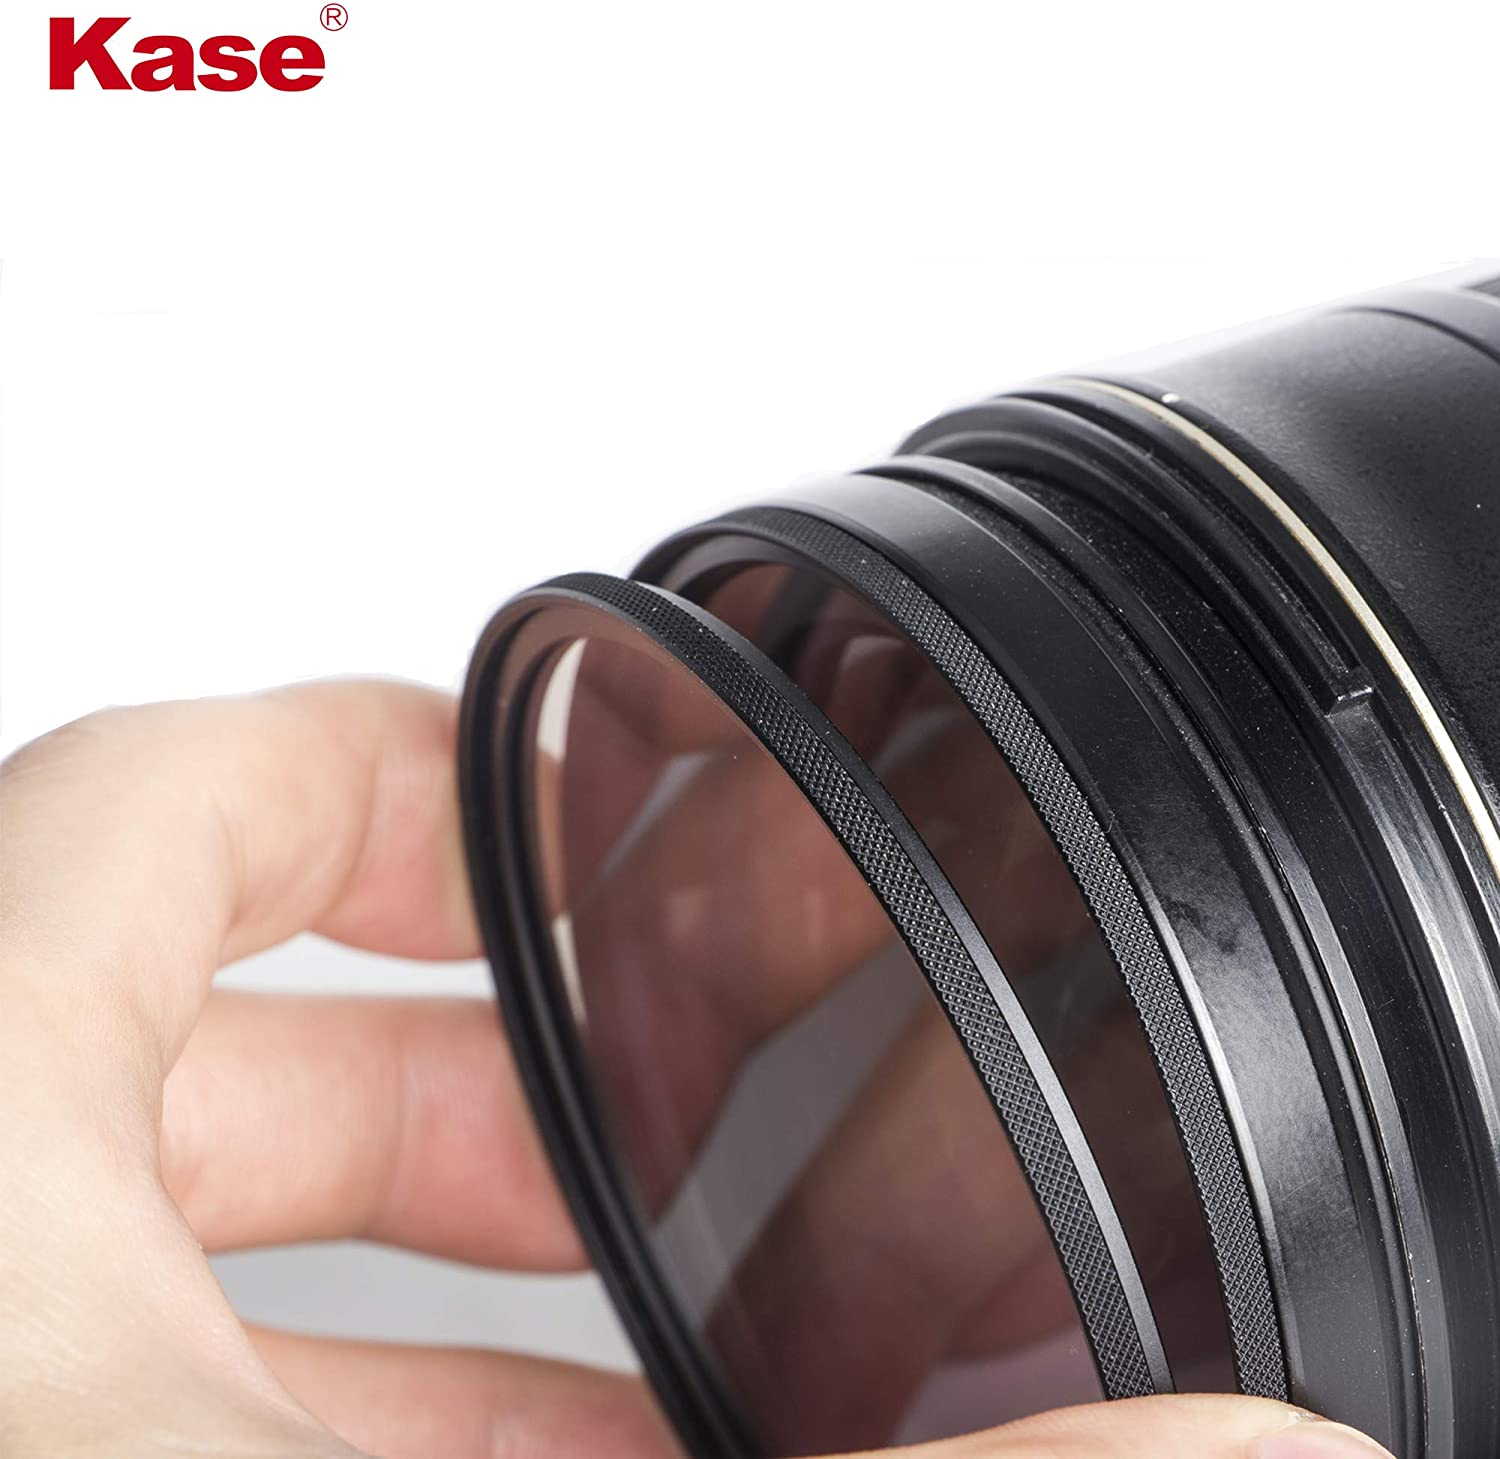 Kase Wolverine 67mm ND8 Magnetic Shockproof Tempered Optical Glass Filter Incl Adapter 67 3 Stop